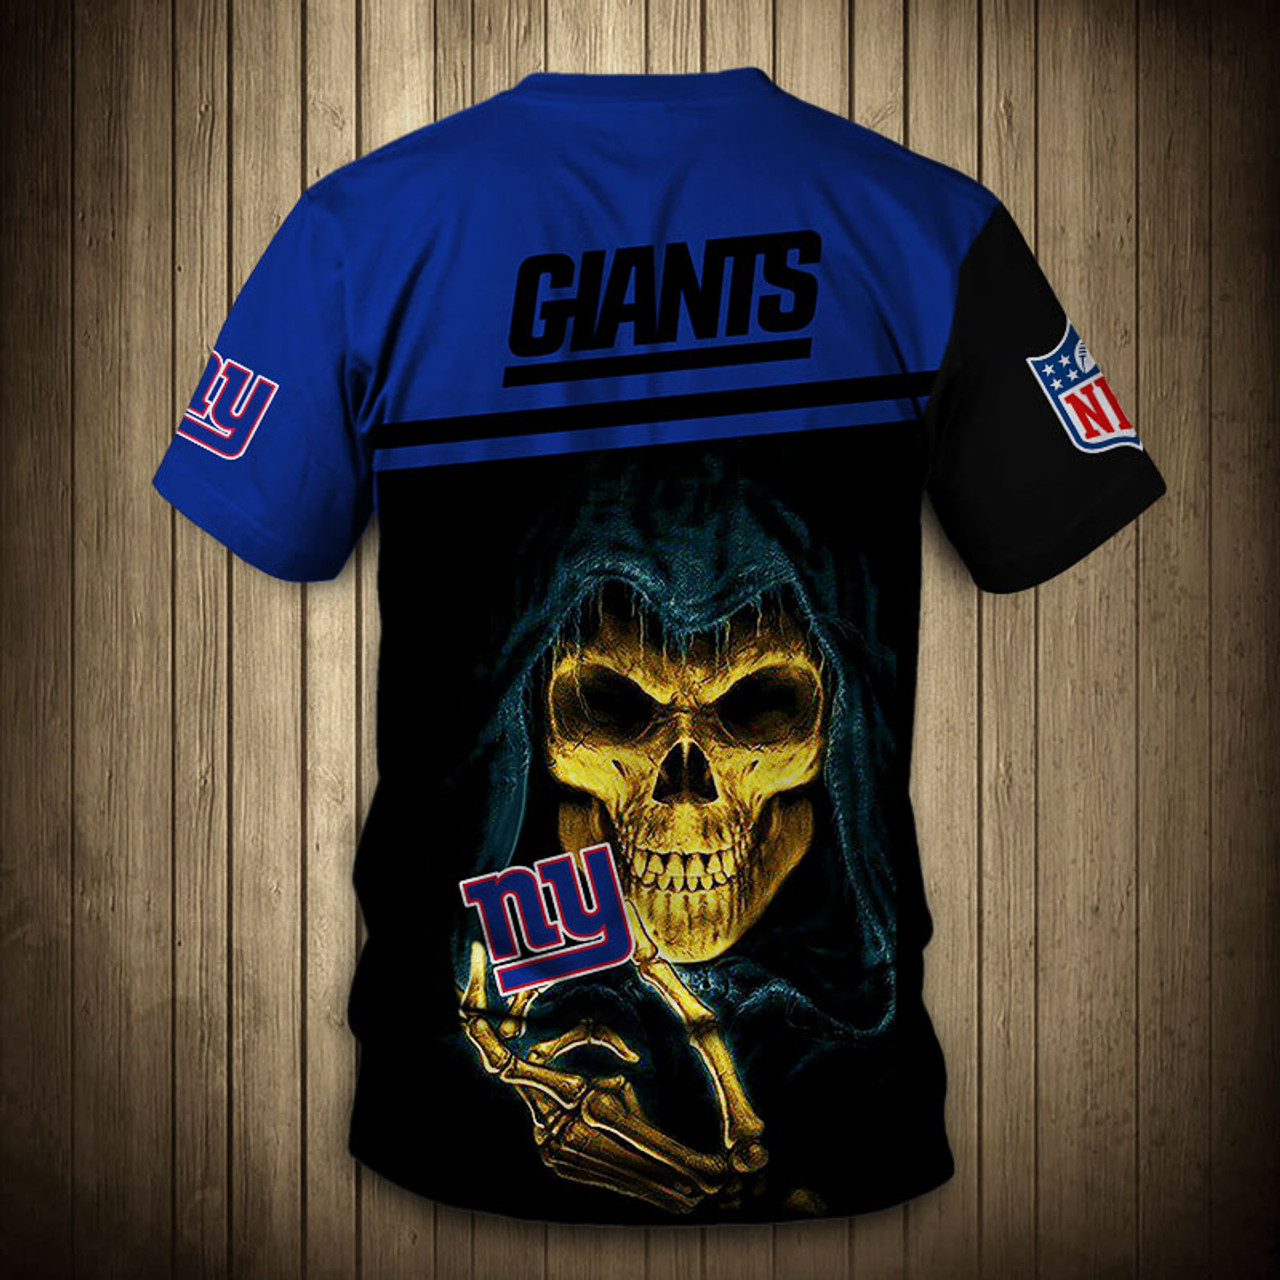 473ebd42 **(OFFICIAL-N.F.L.NEW-YORK-GIANTS-TRENDY-TEAM-TEES/CUSTOM-3D-GIANTS-OFFICIAL-LOGOS  & OFFICIAL-CLASSIC-GIANTS-TEAM-COLORS/DETAILED-3D-GRAPHIC-PRINTED-D...